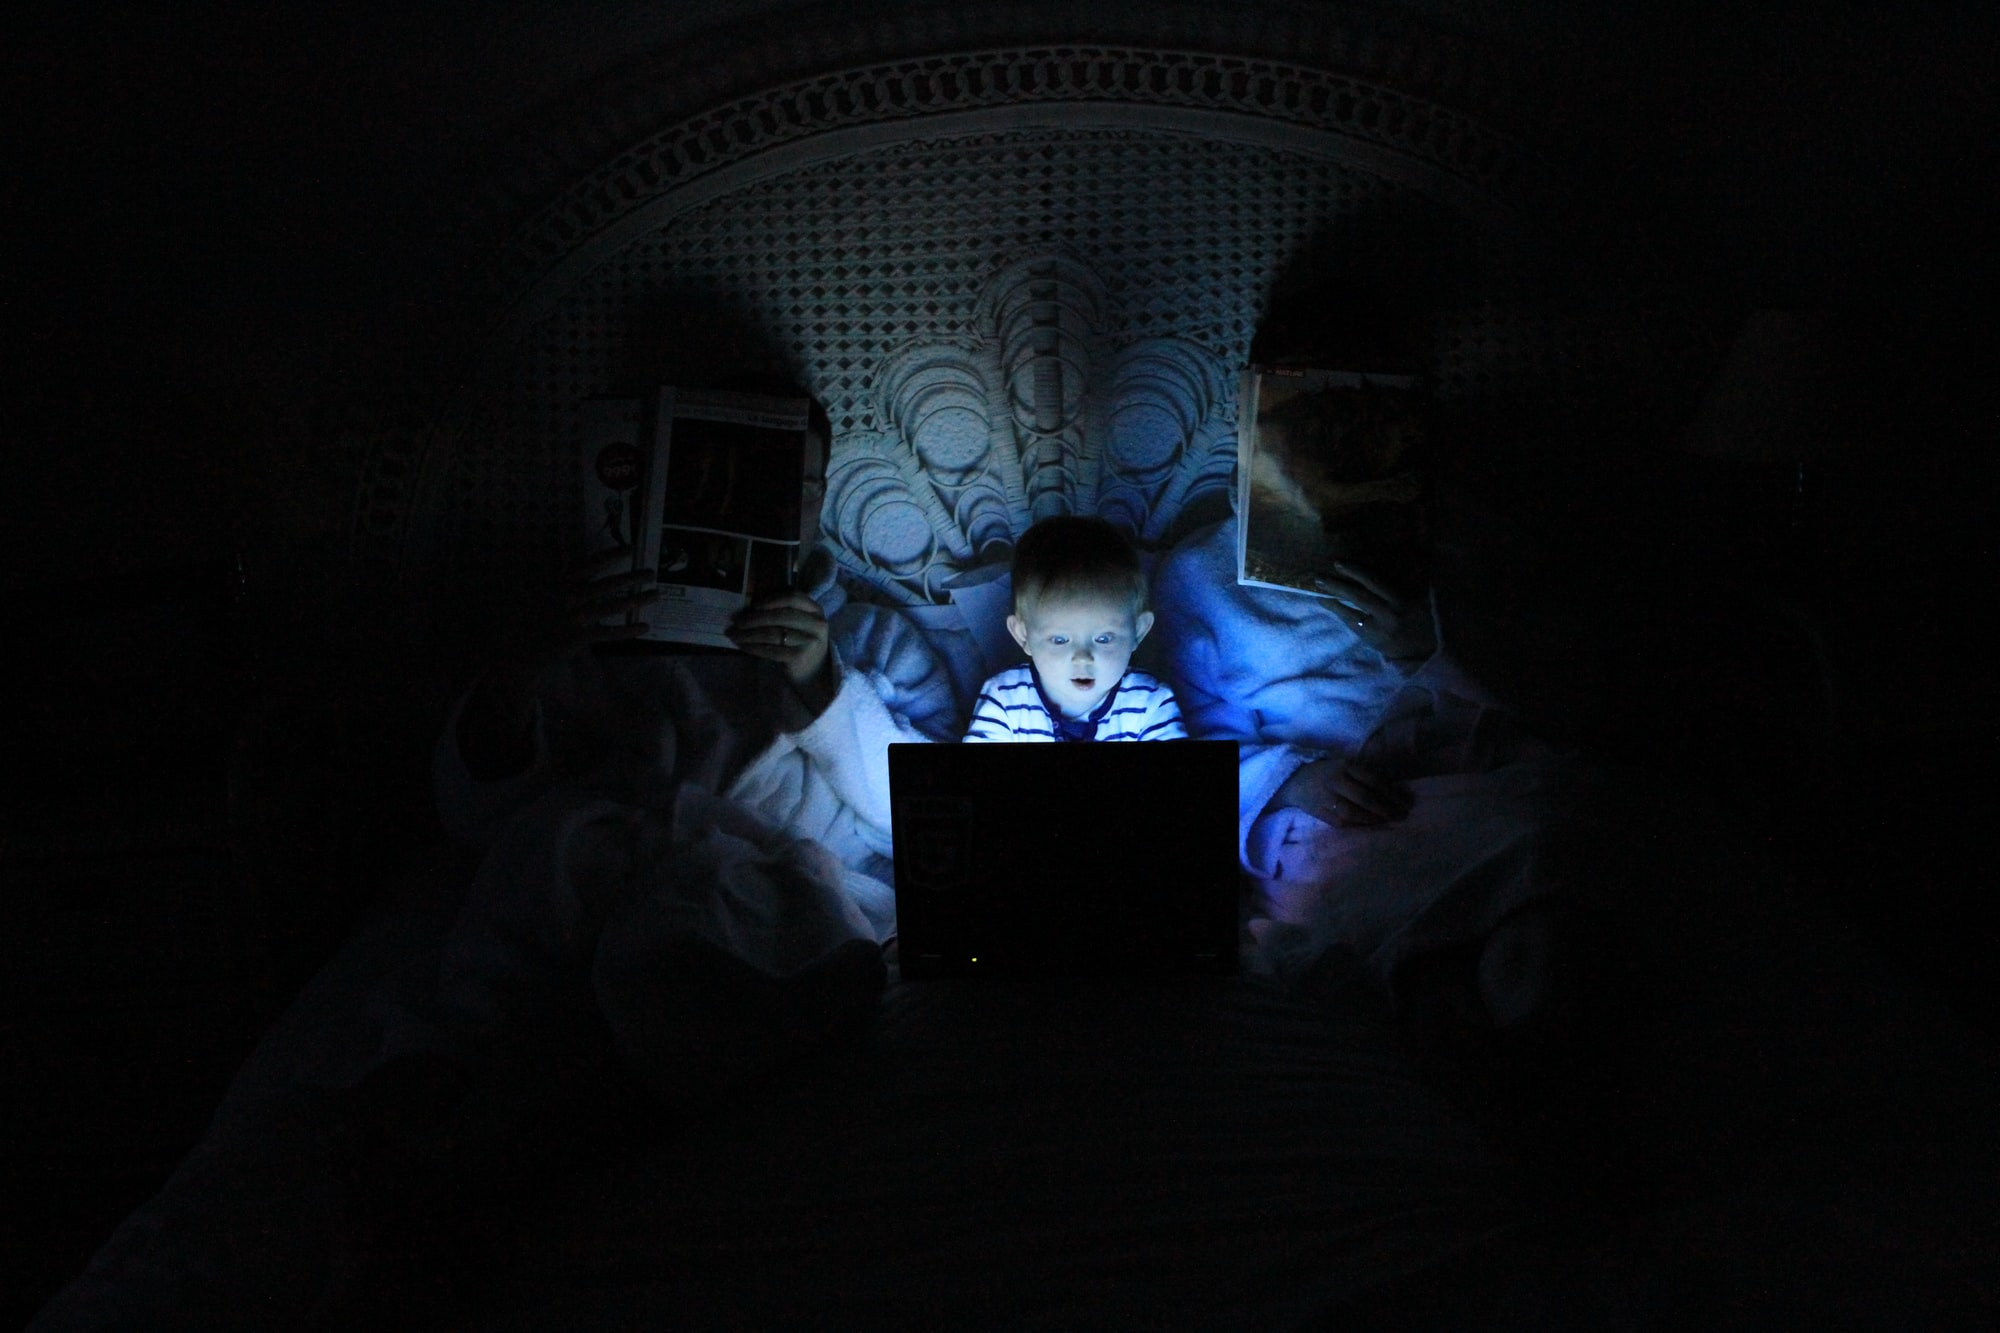 The Online Safety Bill: Striking a Balance Between Free Speech and the Safety of Children?